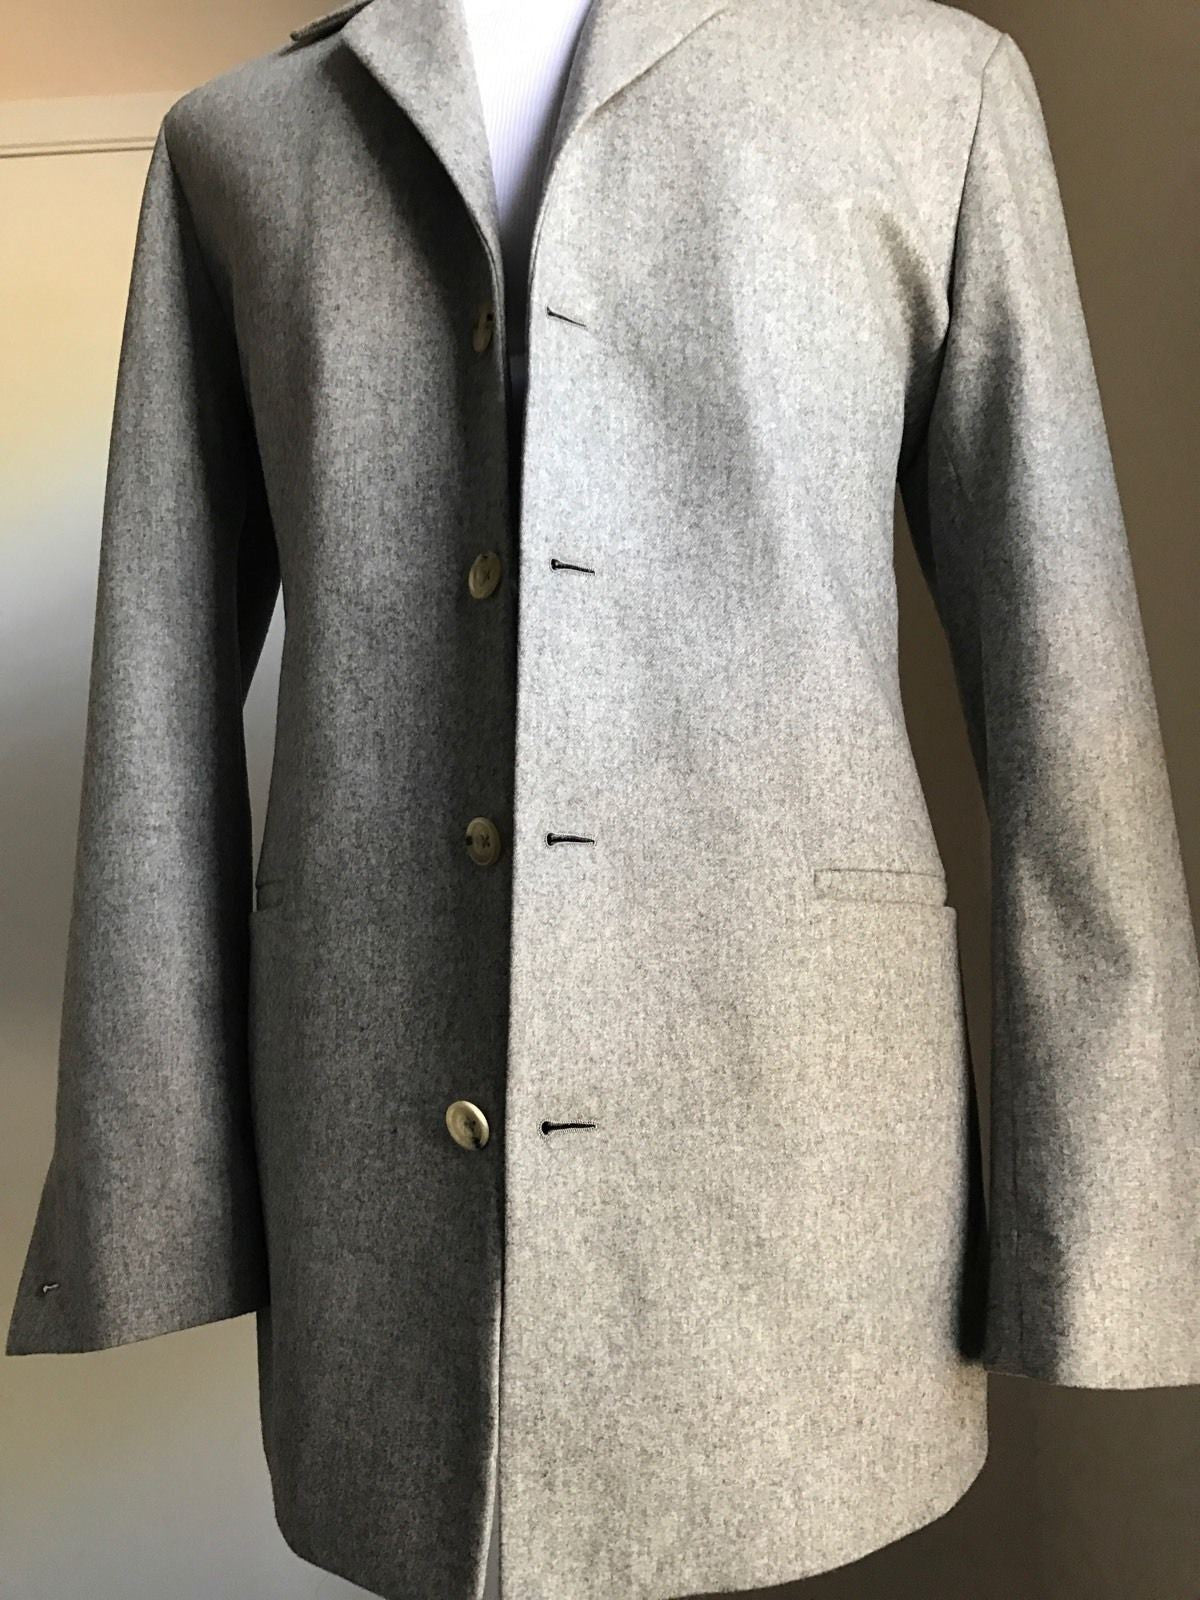 New Napoli Hand Made Men's Sport Coat Jacket, Blazer Gray 38 US ( 48 Eur ) - BAYSUPERSTORE